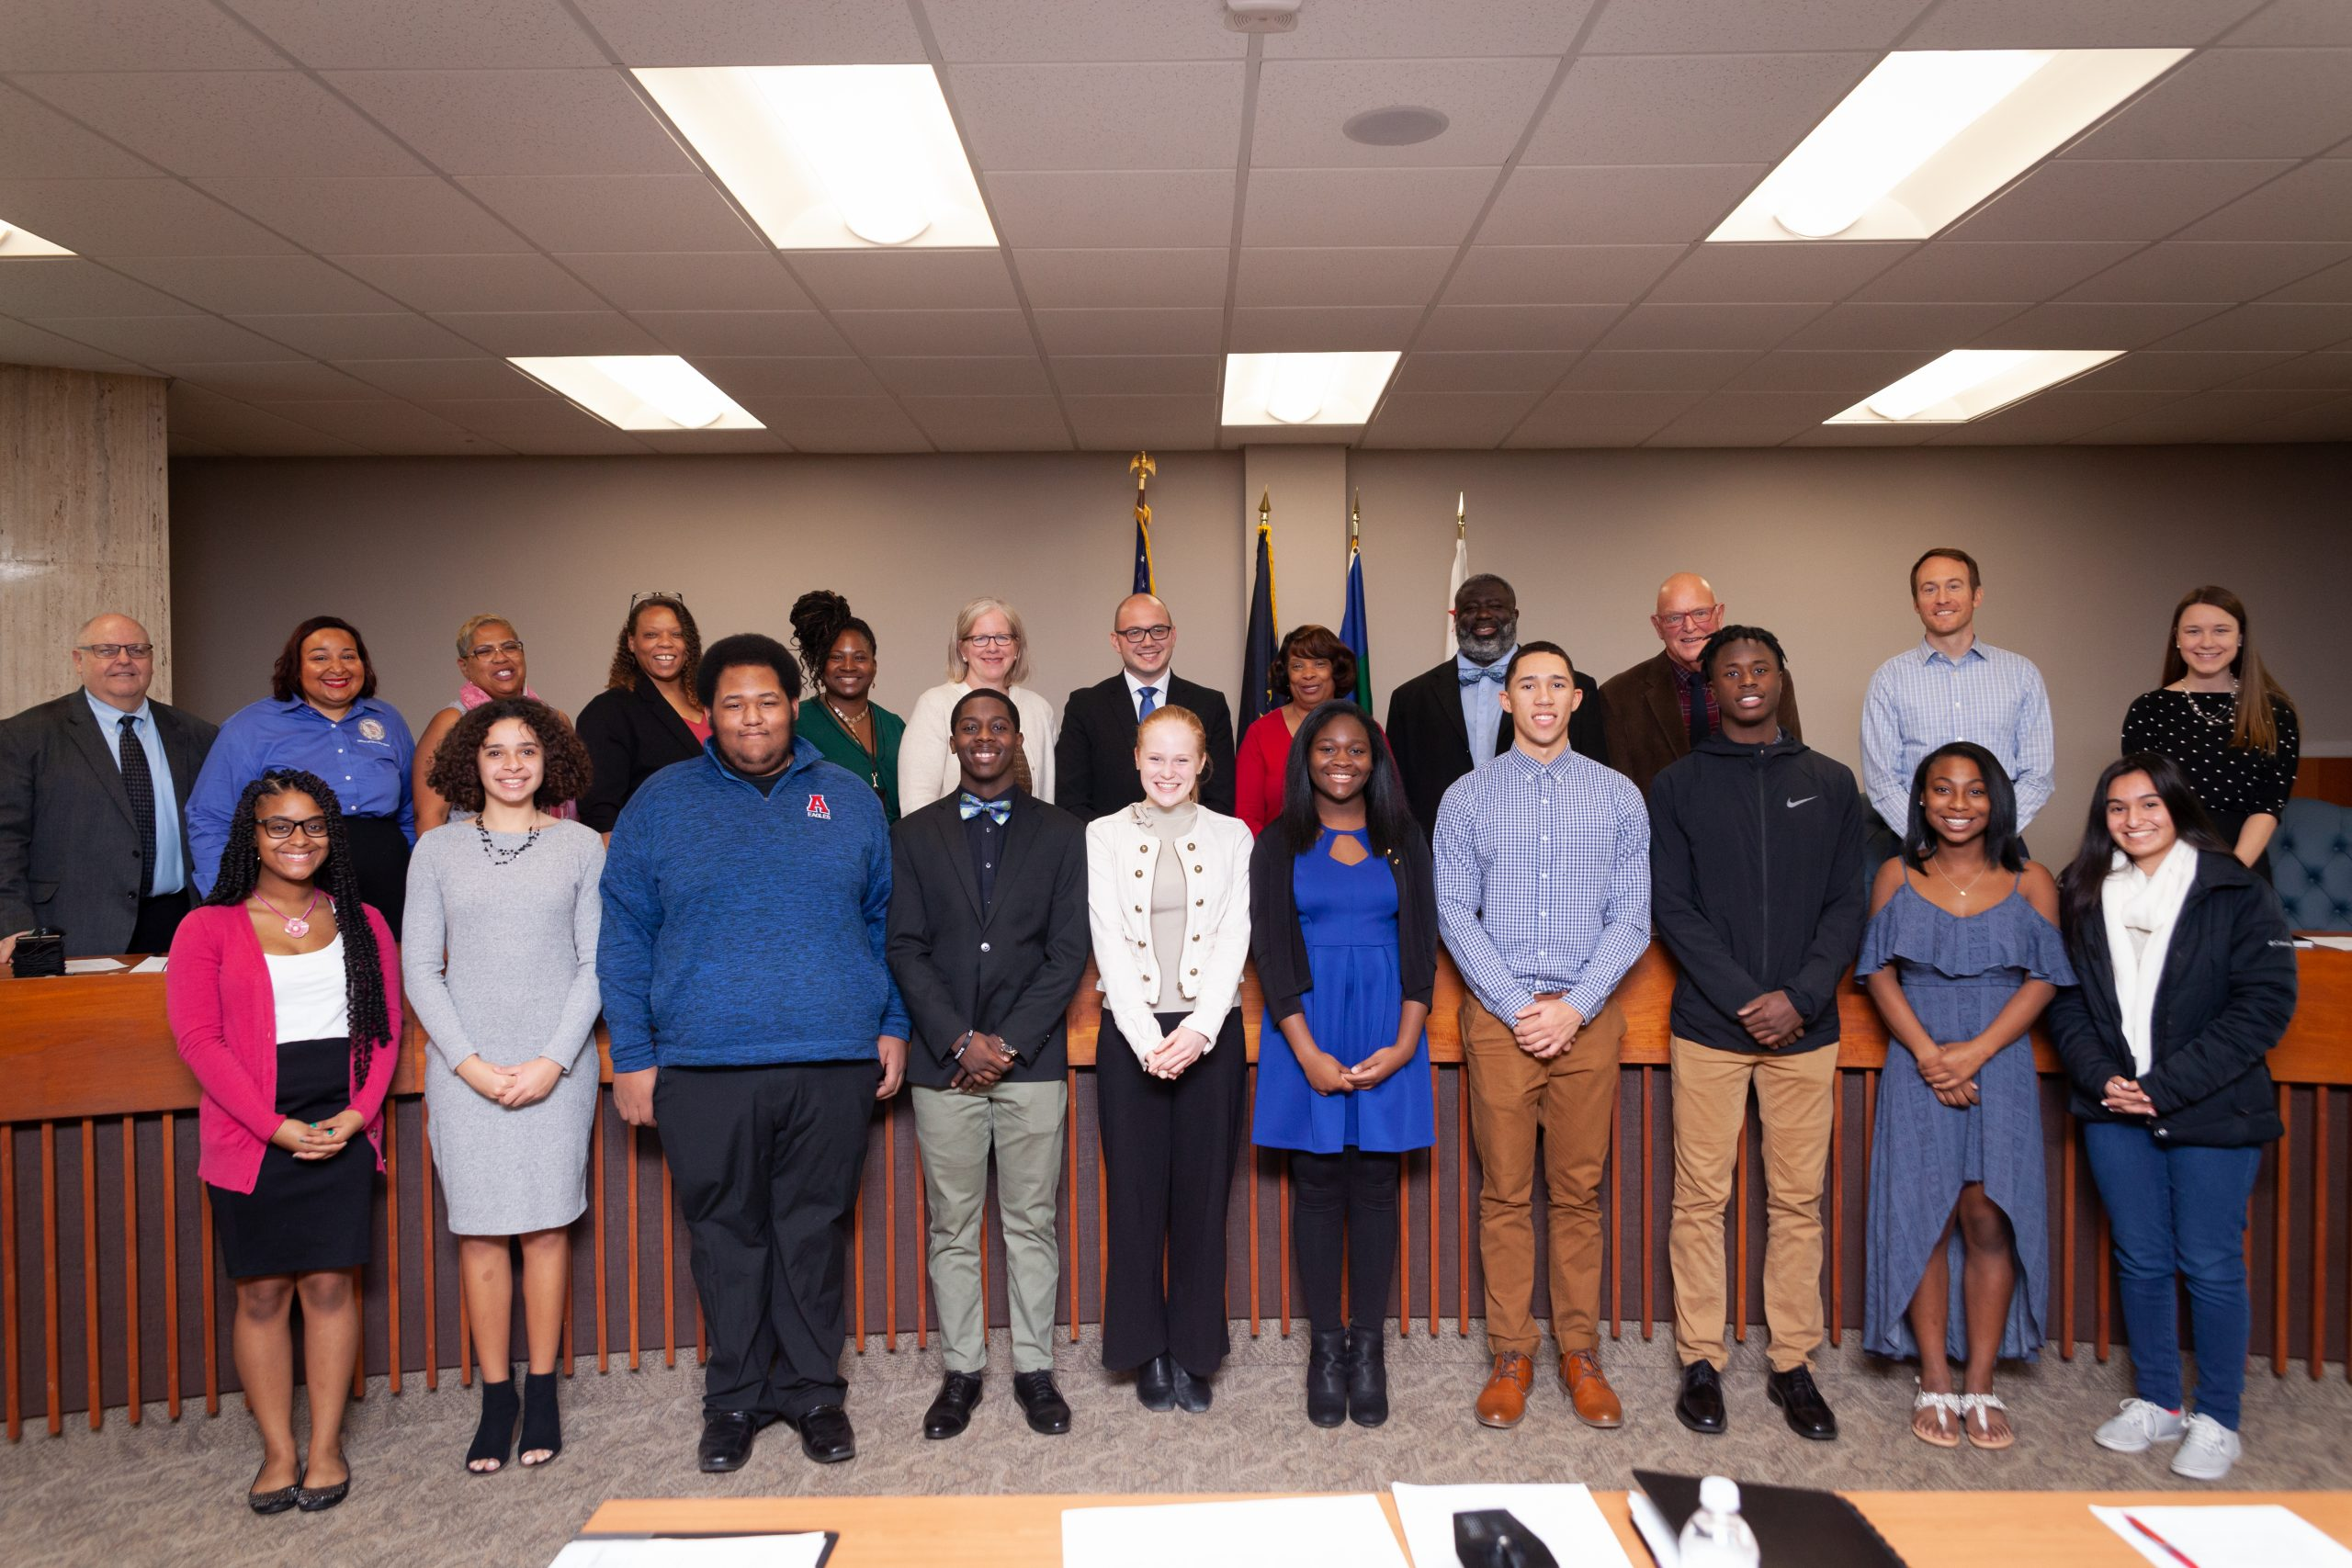 Members of the Youth Advisory Council pose with the South Bend Common Council